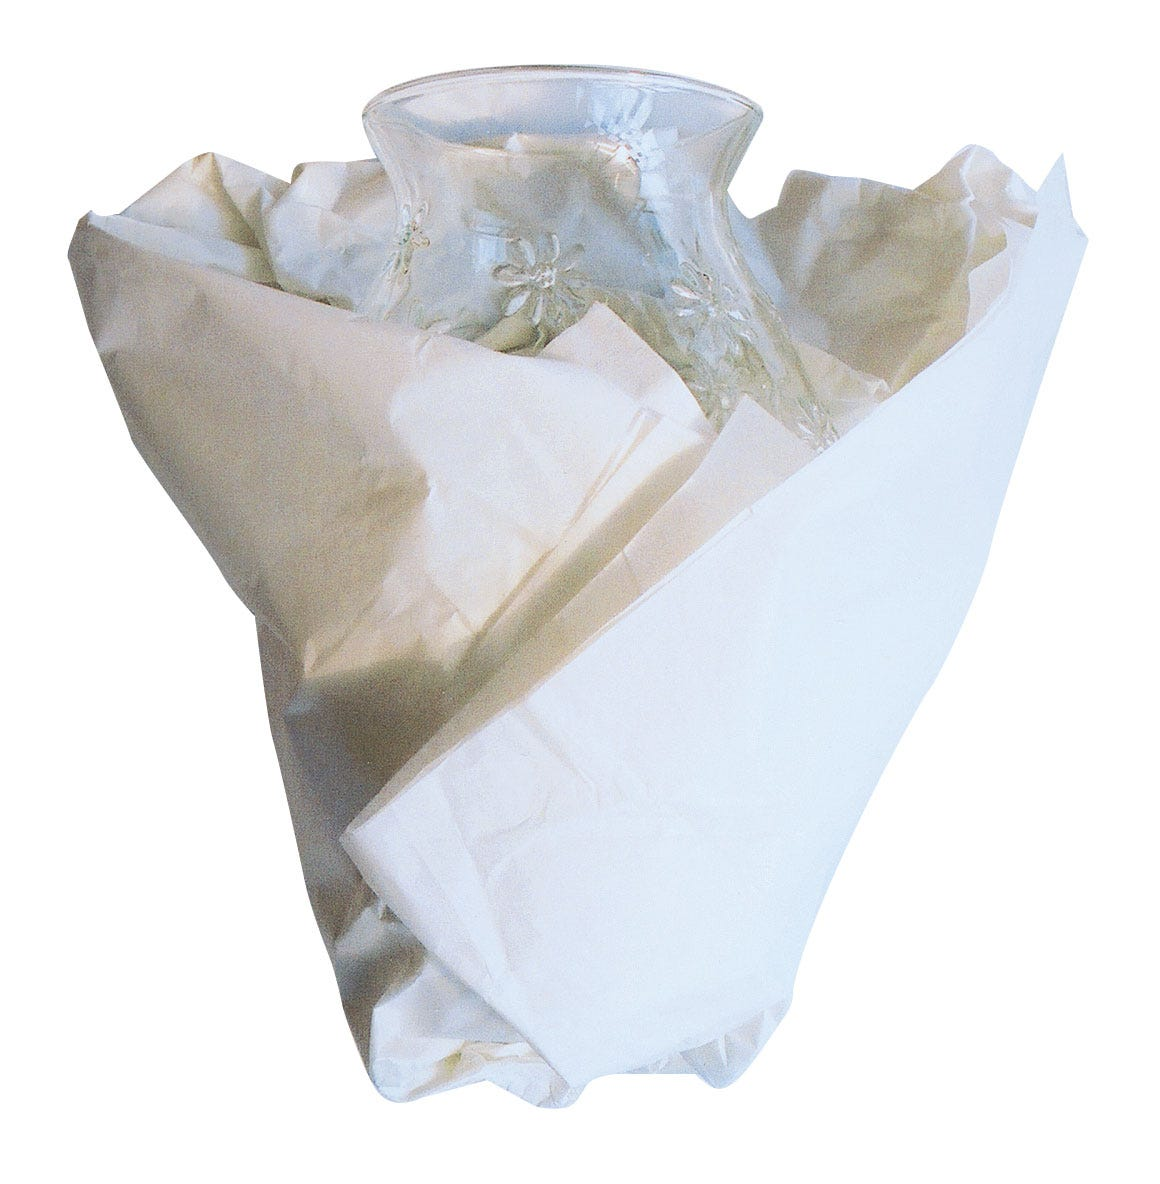 Transpal® 450 x 700mm Bleached MG Tissue Paper